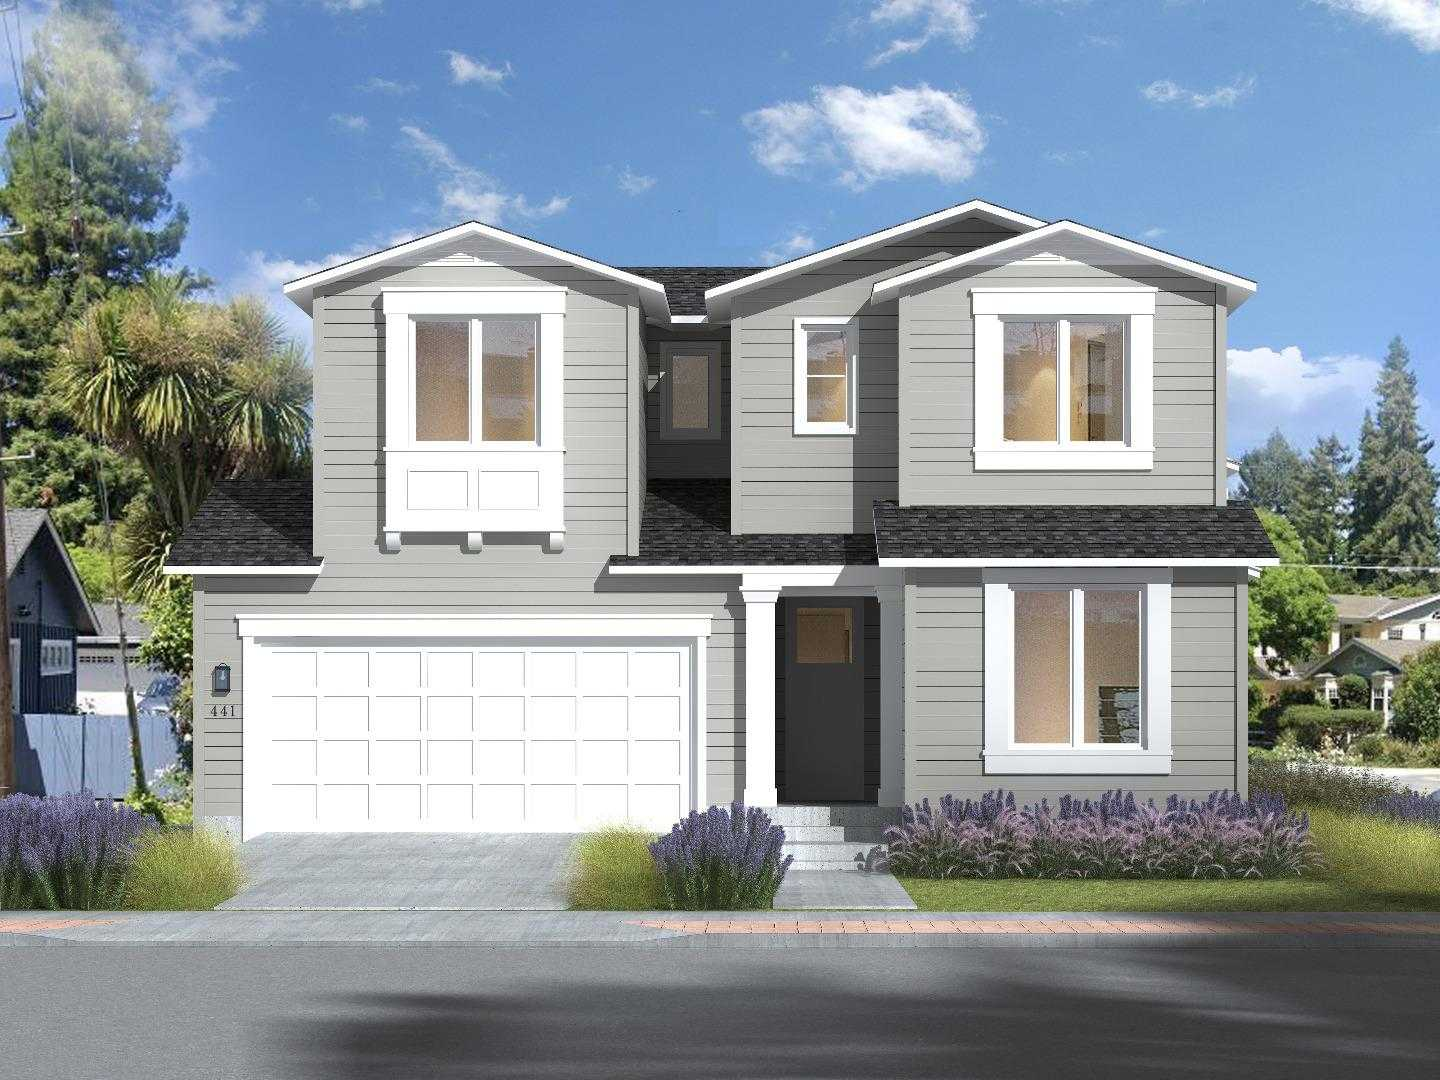 $3,750,000 - 4Br/3Ba -  for Sale in Menlo Park